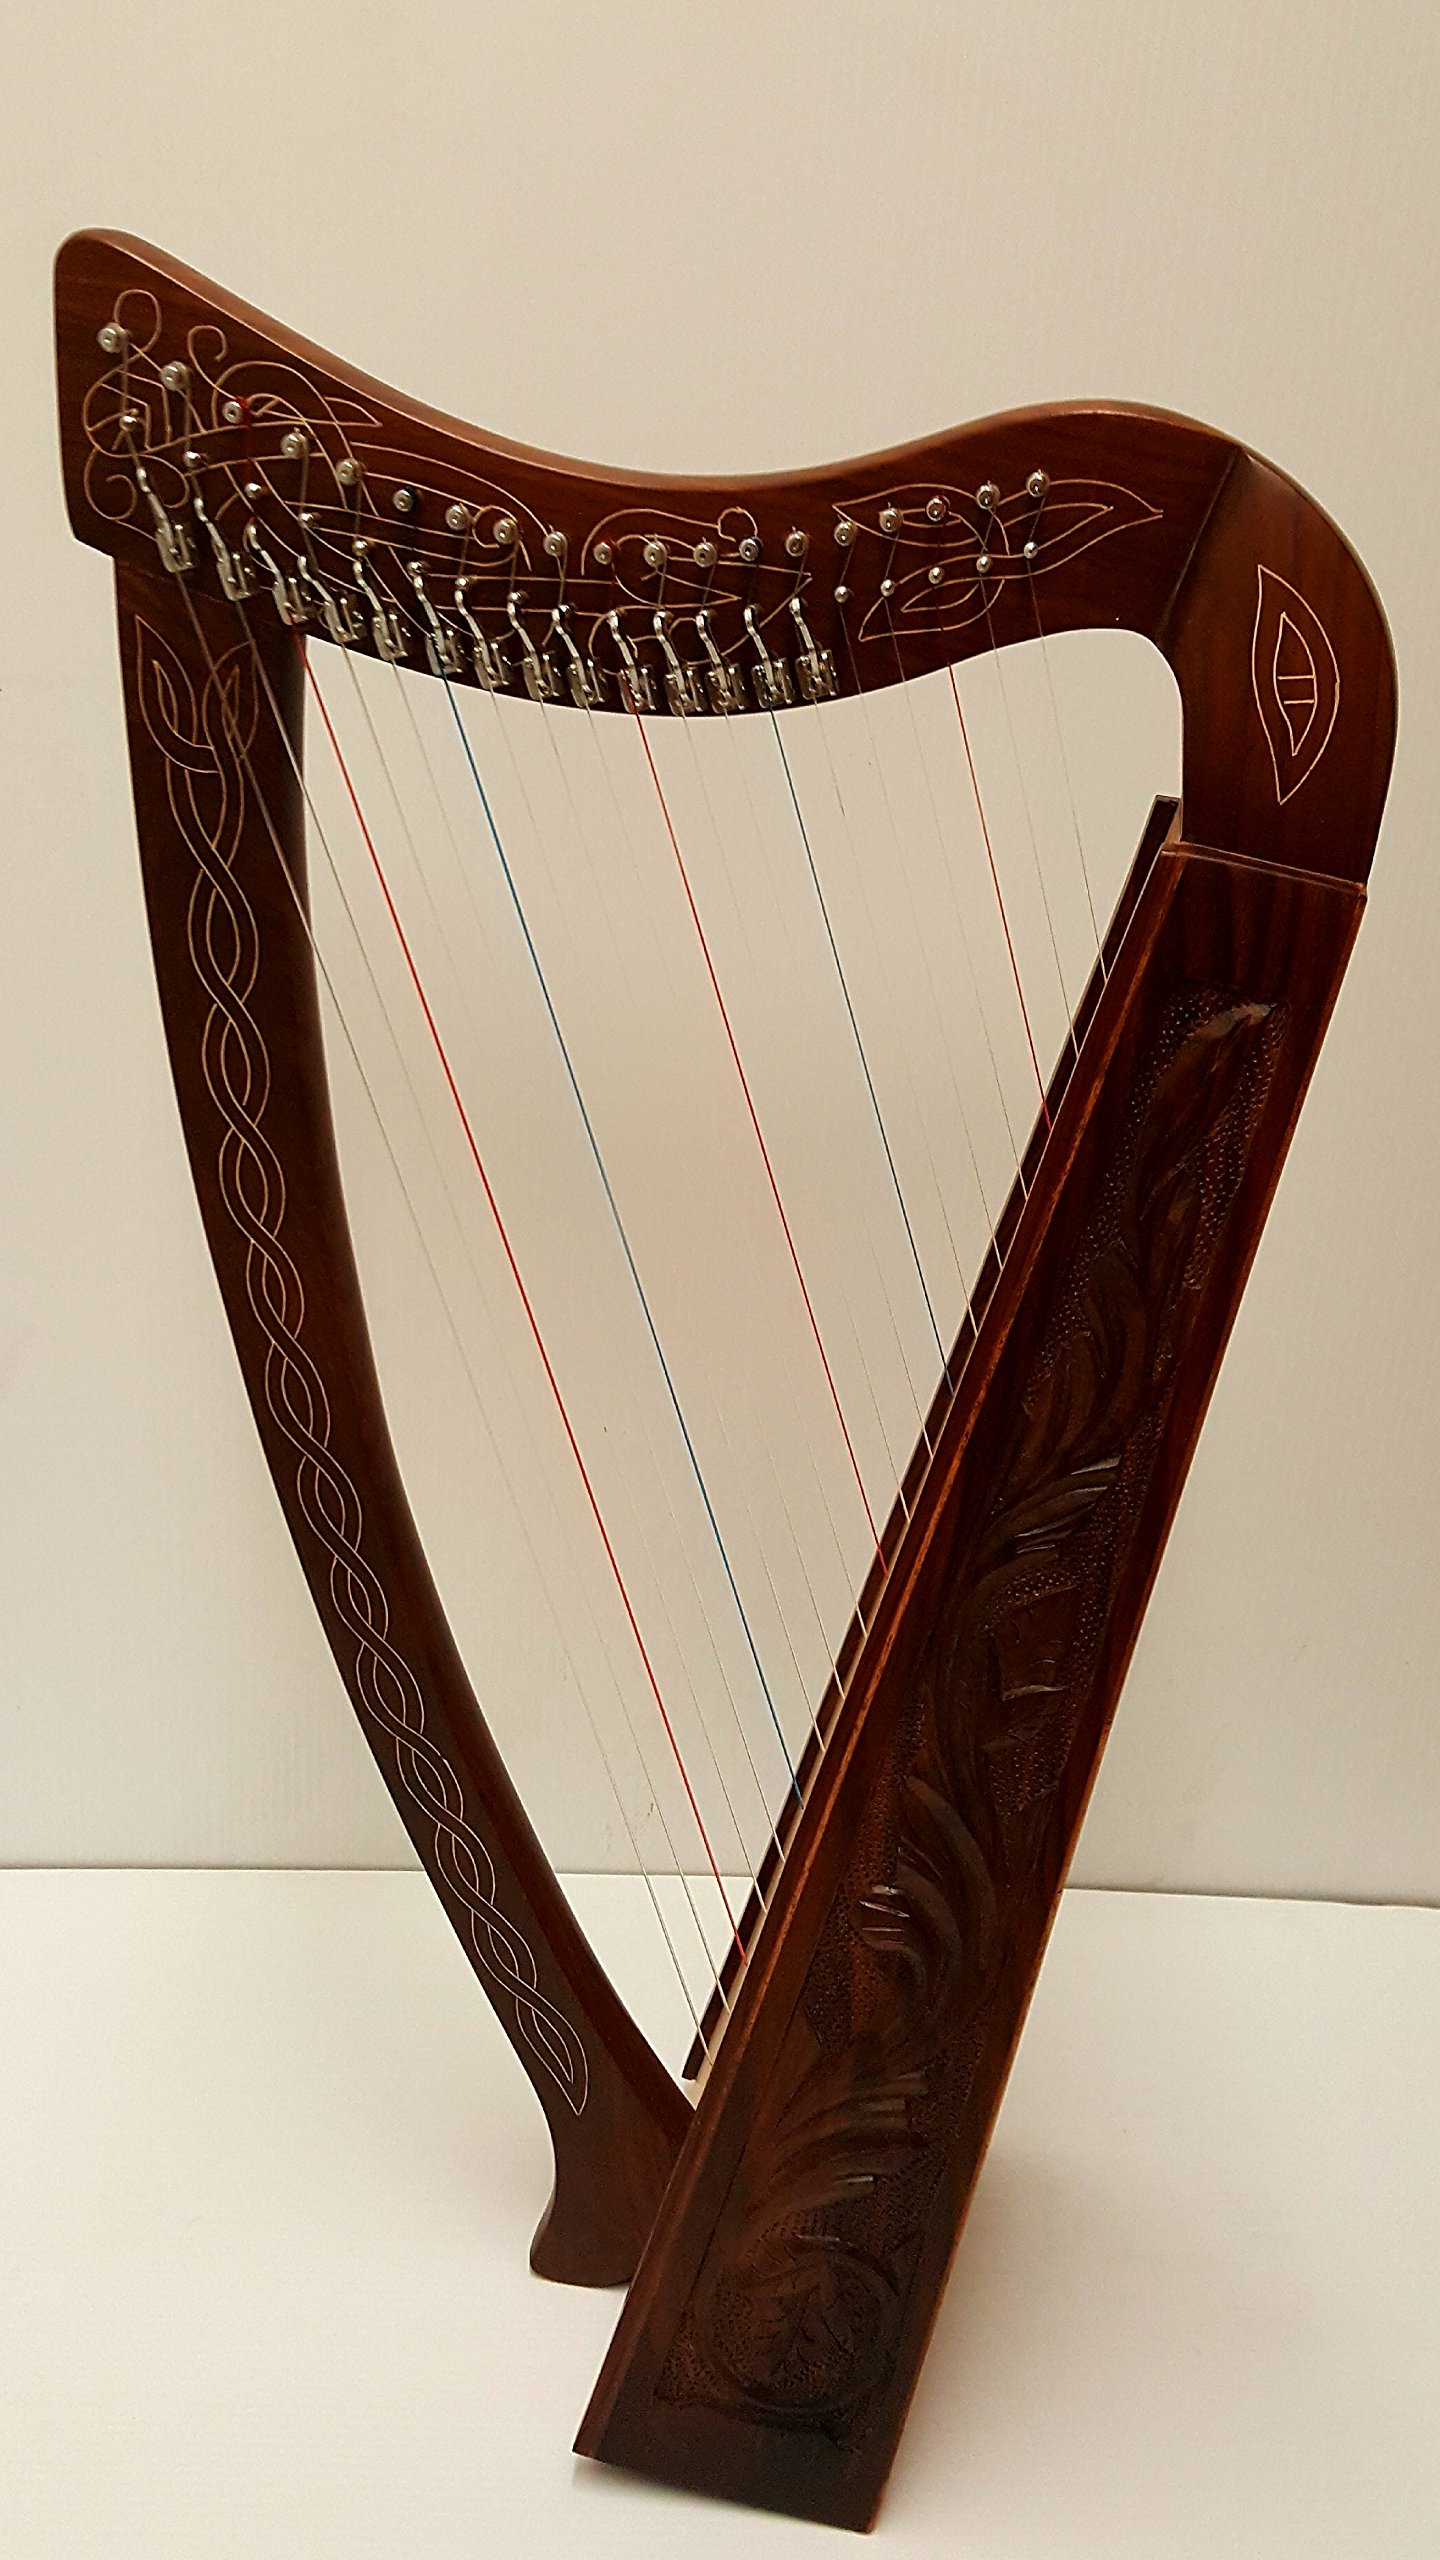 31 Inch Tall Celtic Irish Knee Harp 19 Strings Solid Wood Free Bag Strings Key